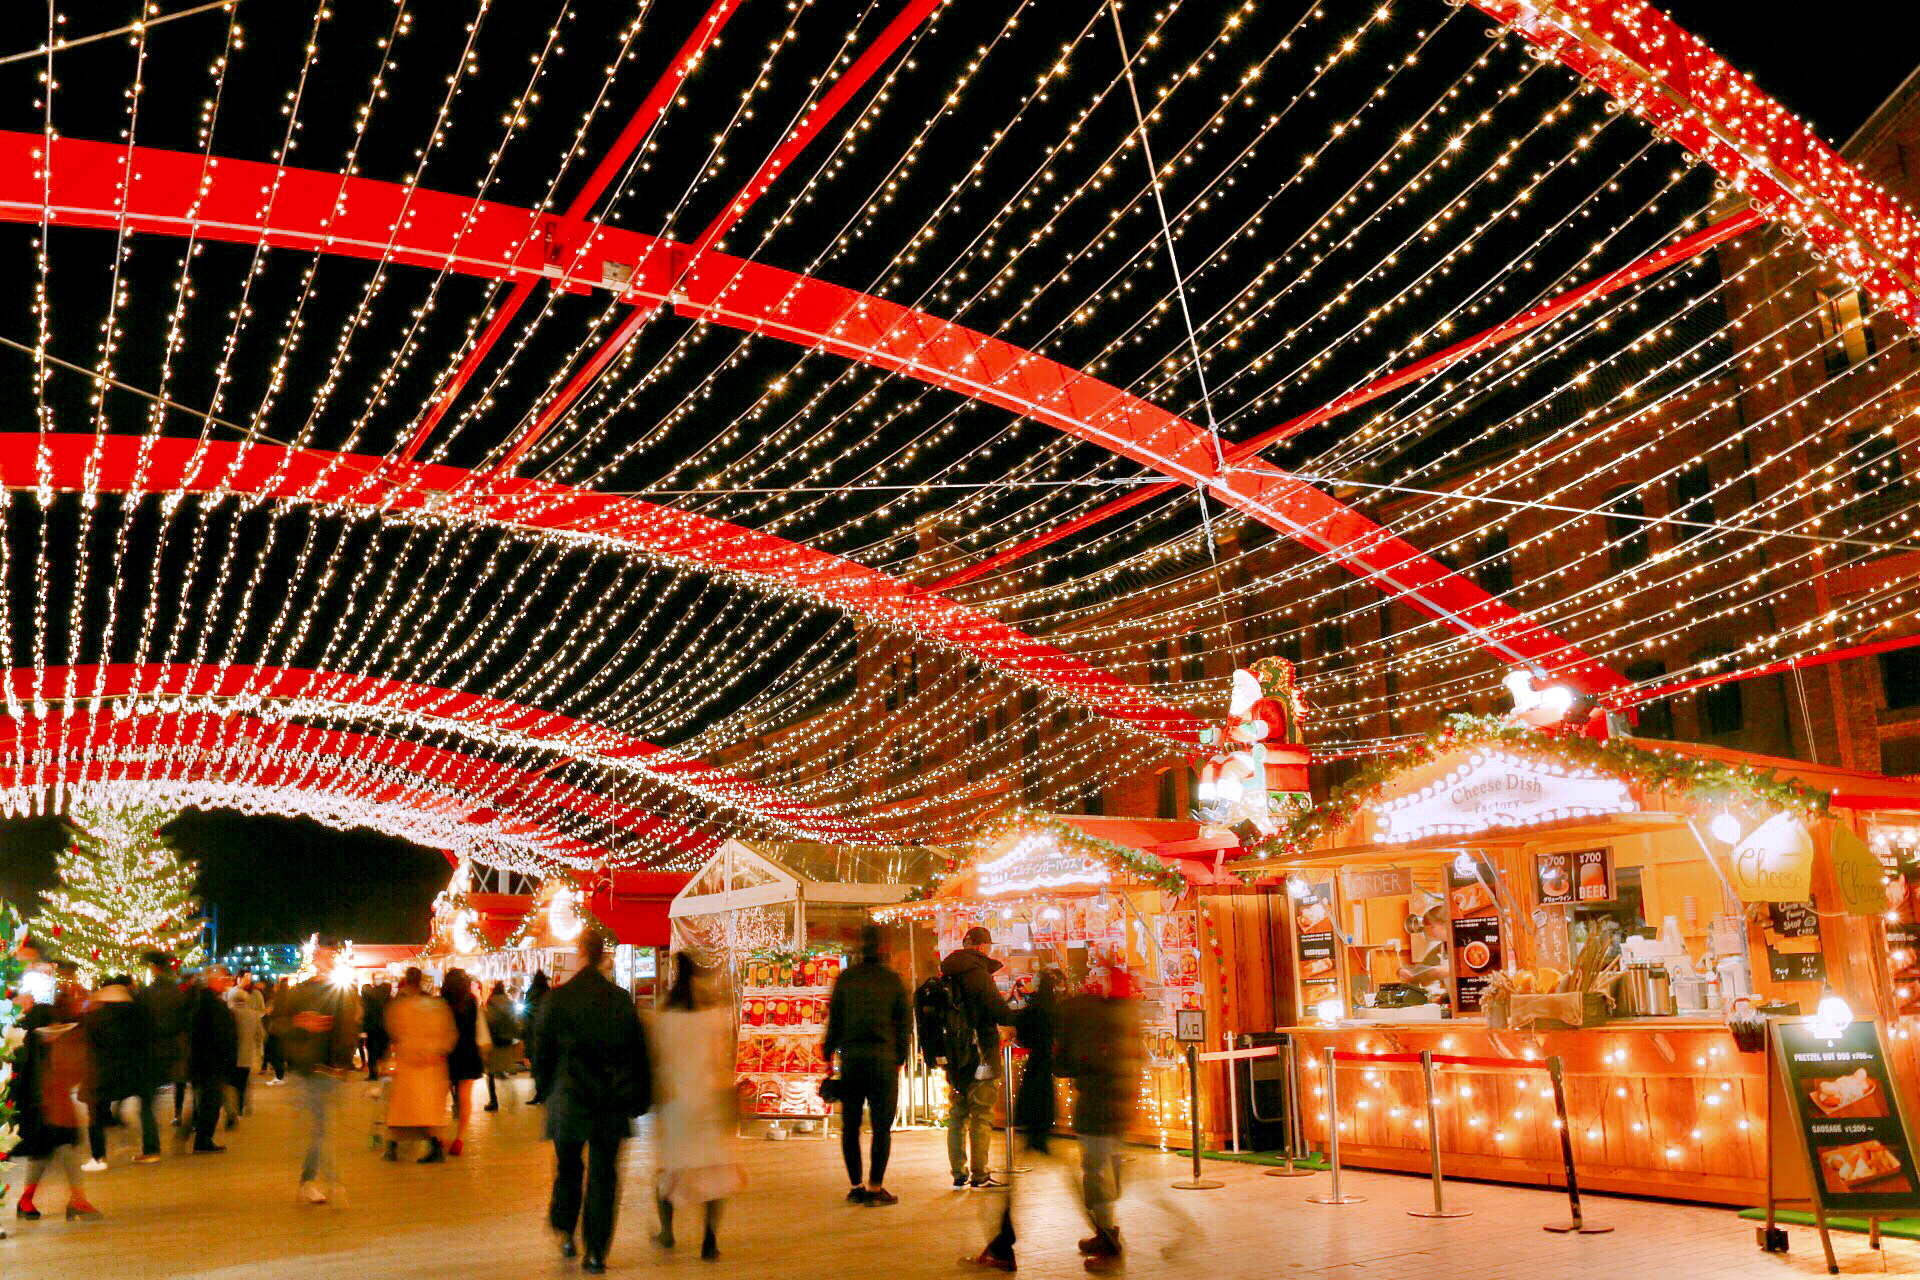 Christmas Market in 横浜赤レンガ倉庫会場風景